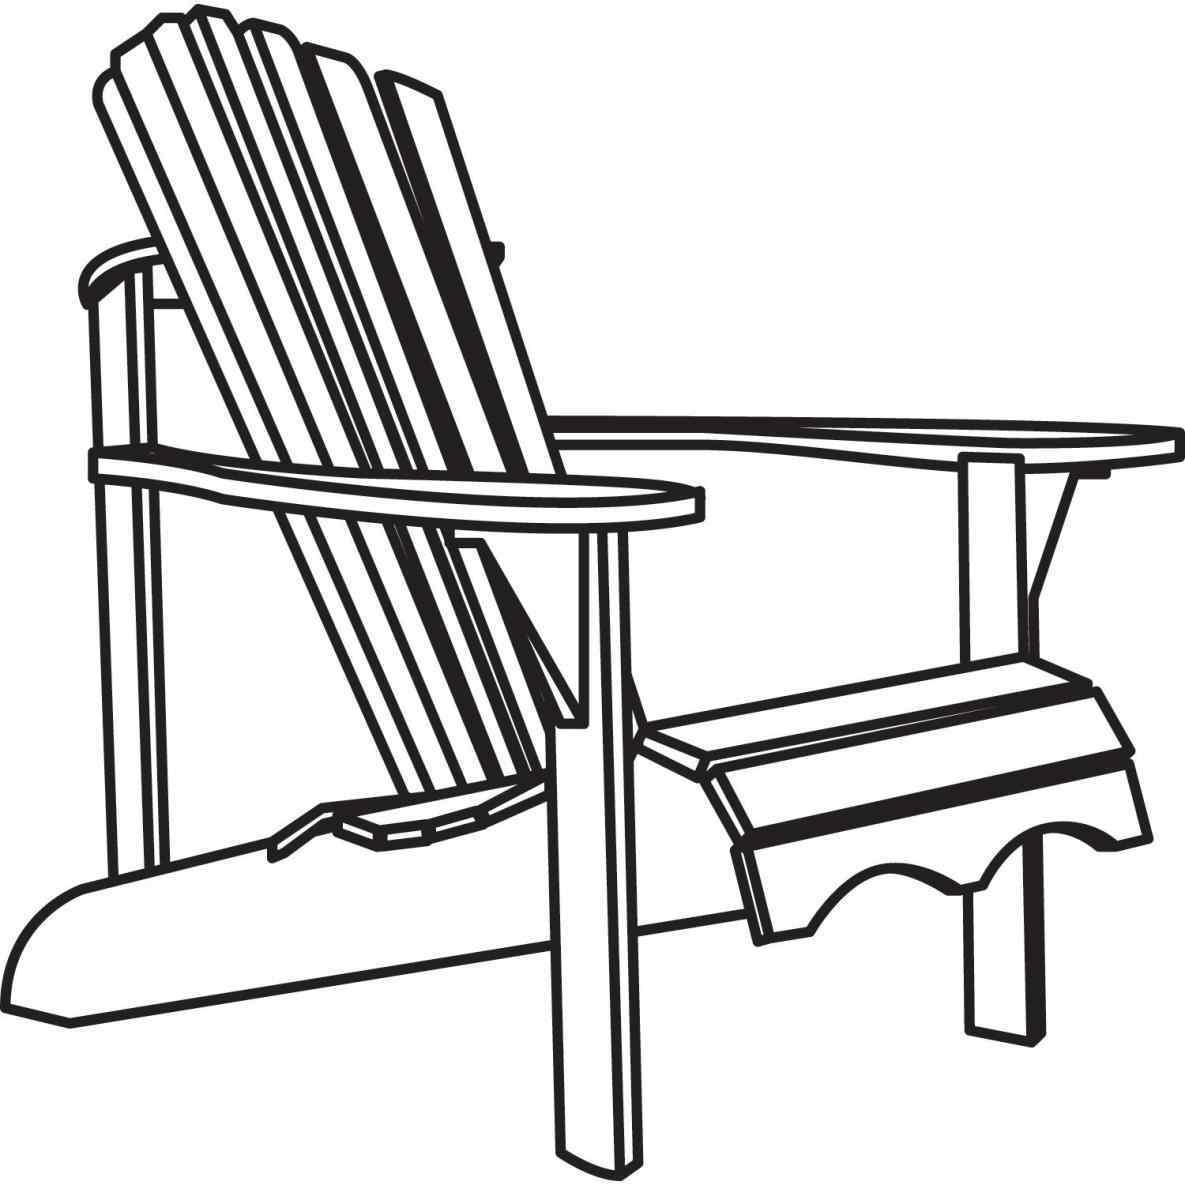 Isometric Drawing Of A Chair At Getdrawings